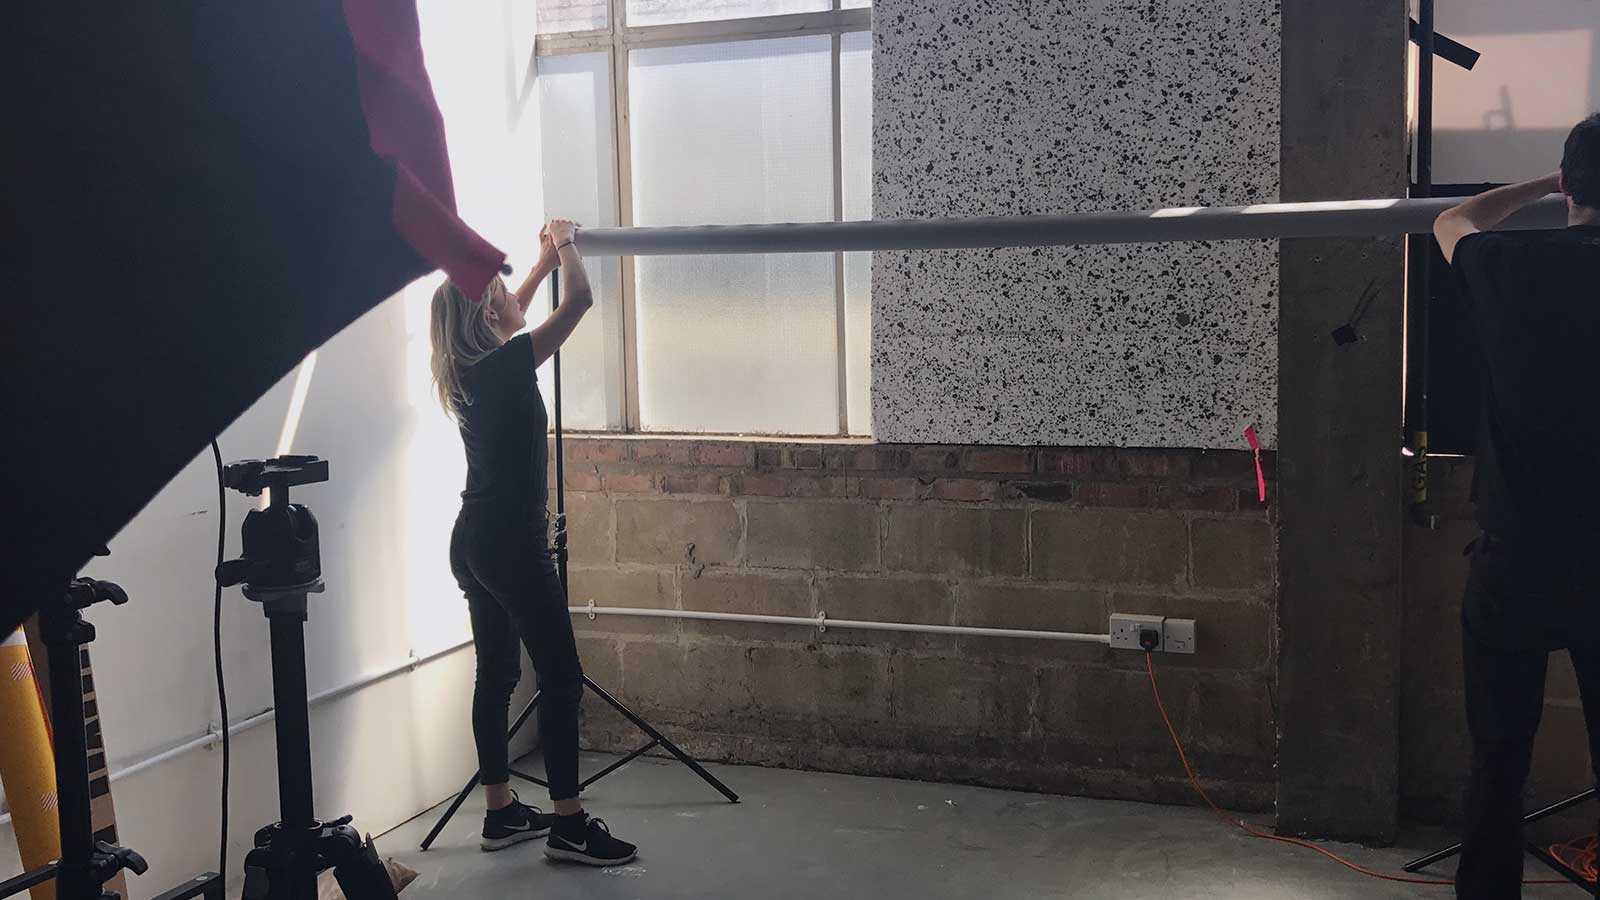 Behind the scenes at the Yourbill photoshoot